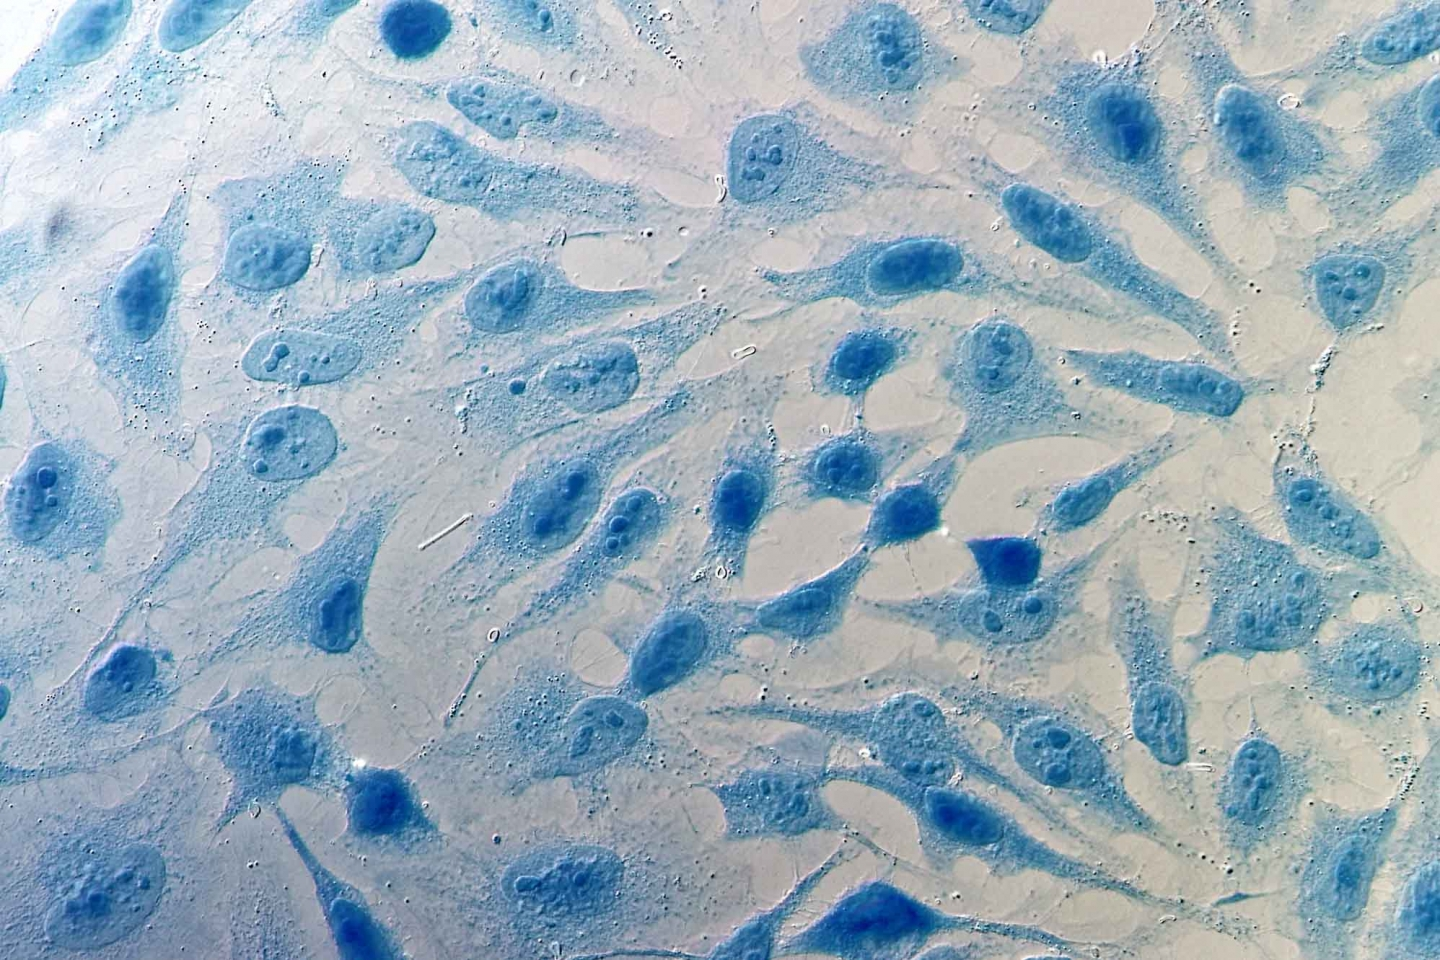 HeLa cervical cancer cells dyed blue